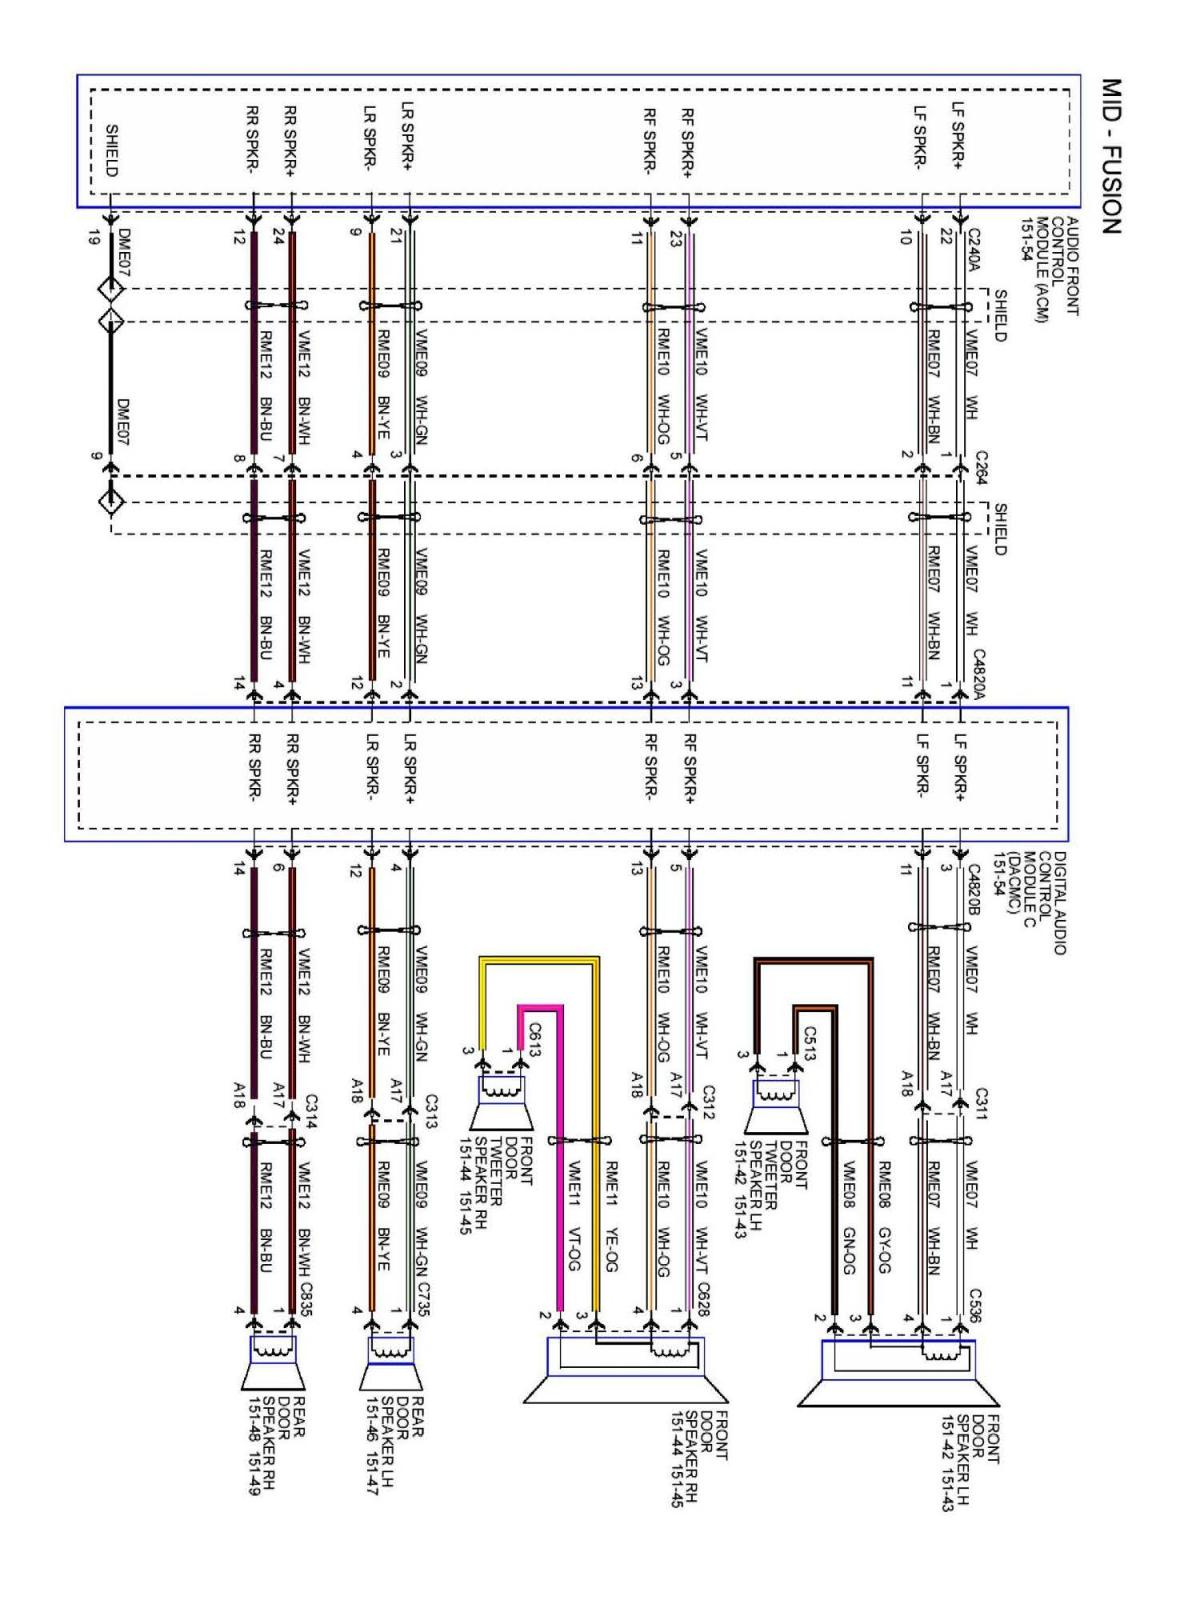 post 28793 0 03577400 1457001803 2013 2014 fusion mft wiring speaker diagrams? audio, navigation 2013 ford fusion speaker wire diagram at edmiracle.co